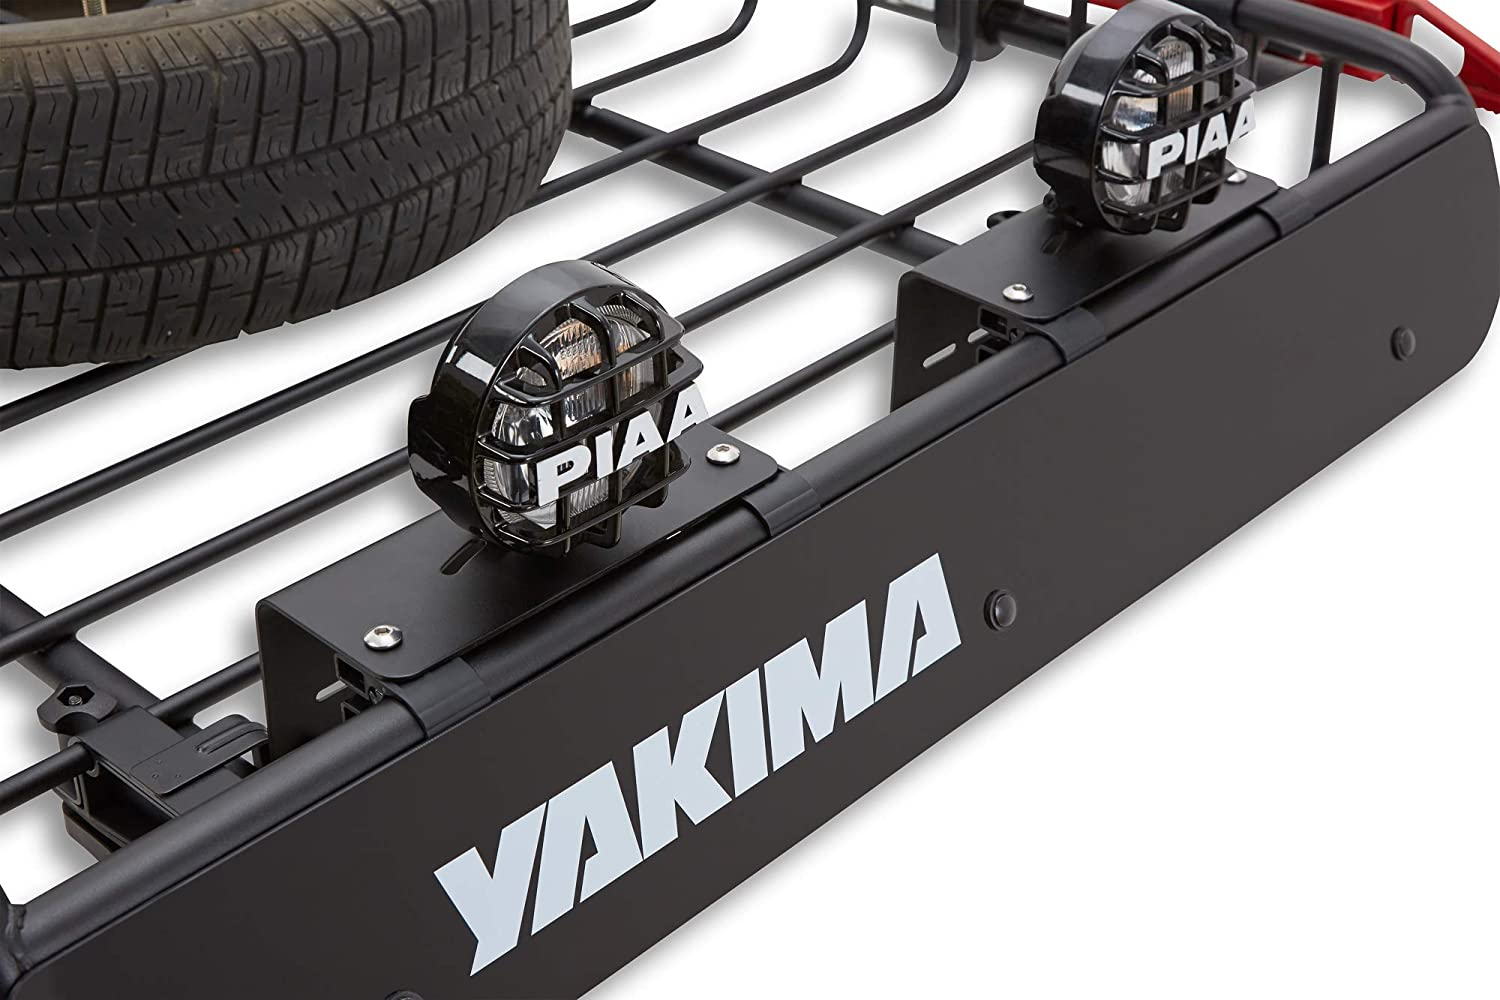 B0000AT0PG YAKIMA - Light Mounting Bracket for Cargo Baskets 713fLopCHfL